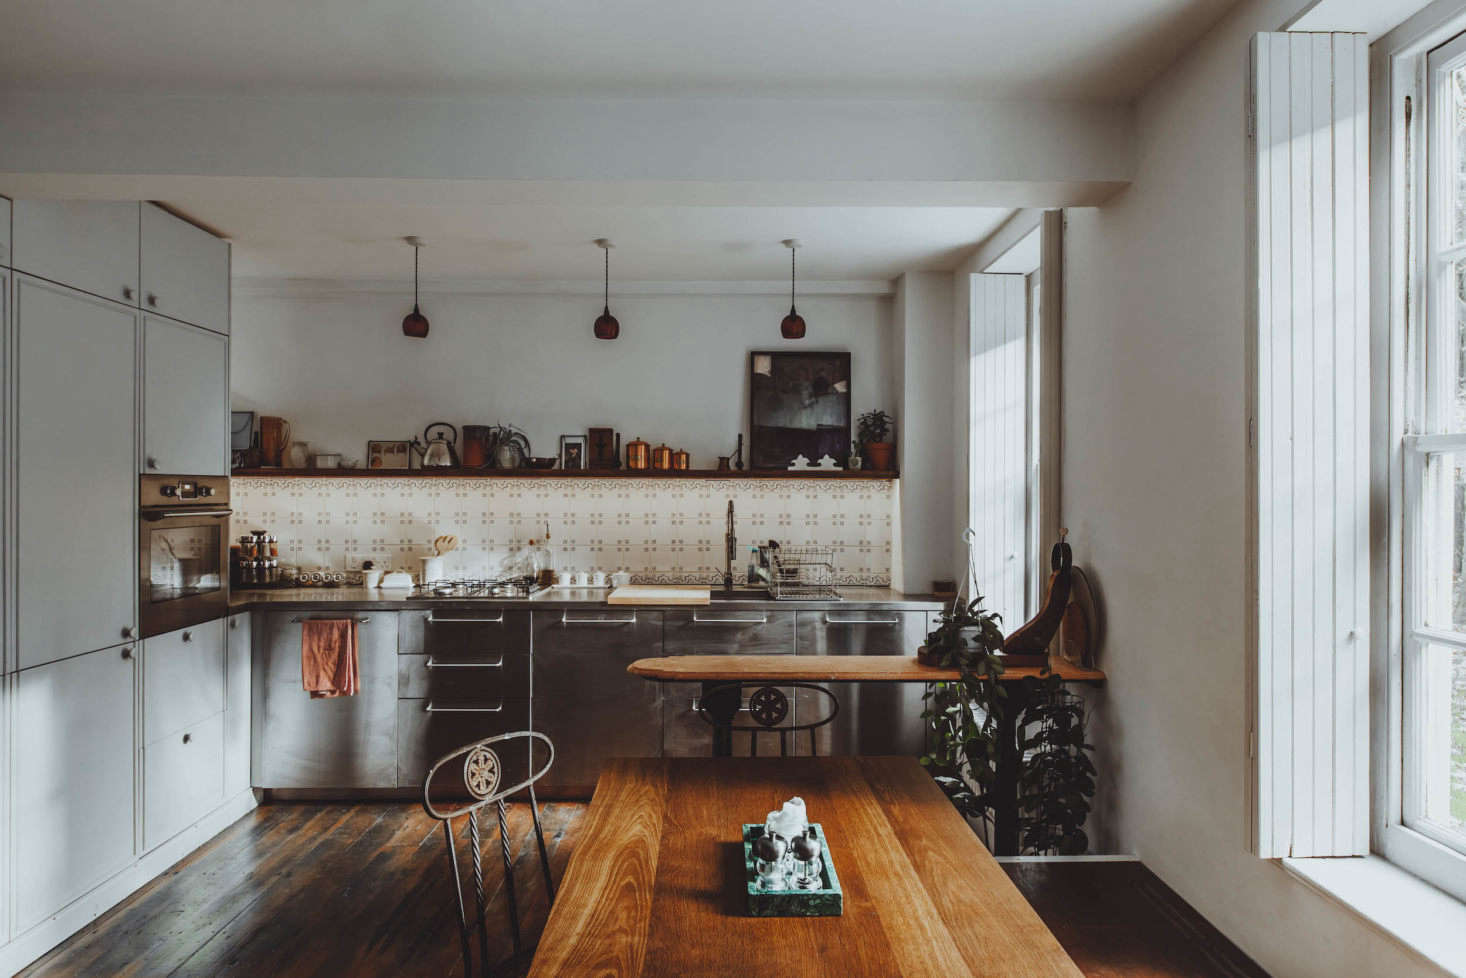 The kitchen fills one end of the main room. &#8